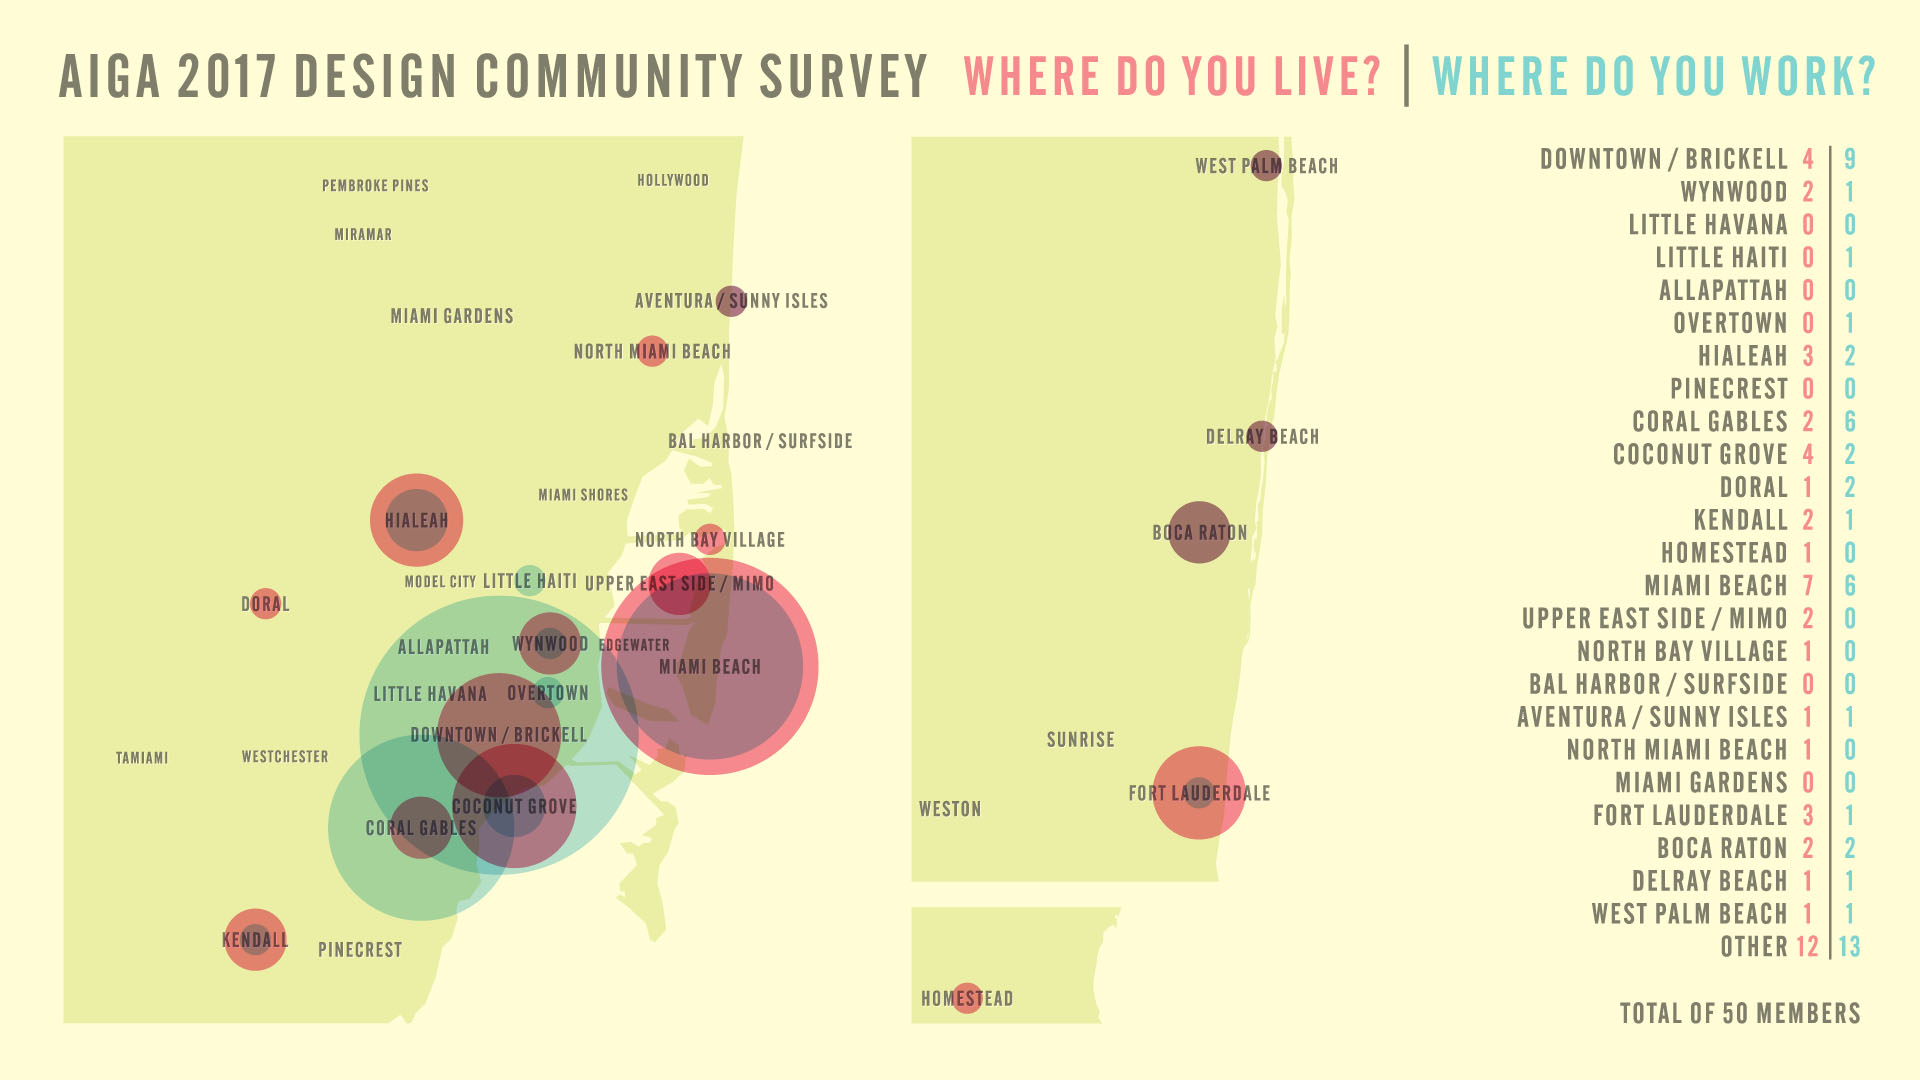 Where do you live? Where do you work? Infographic by Fabio Perez